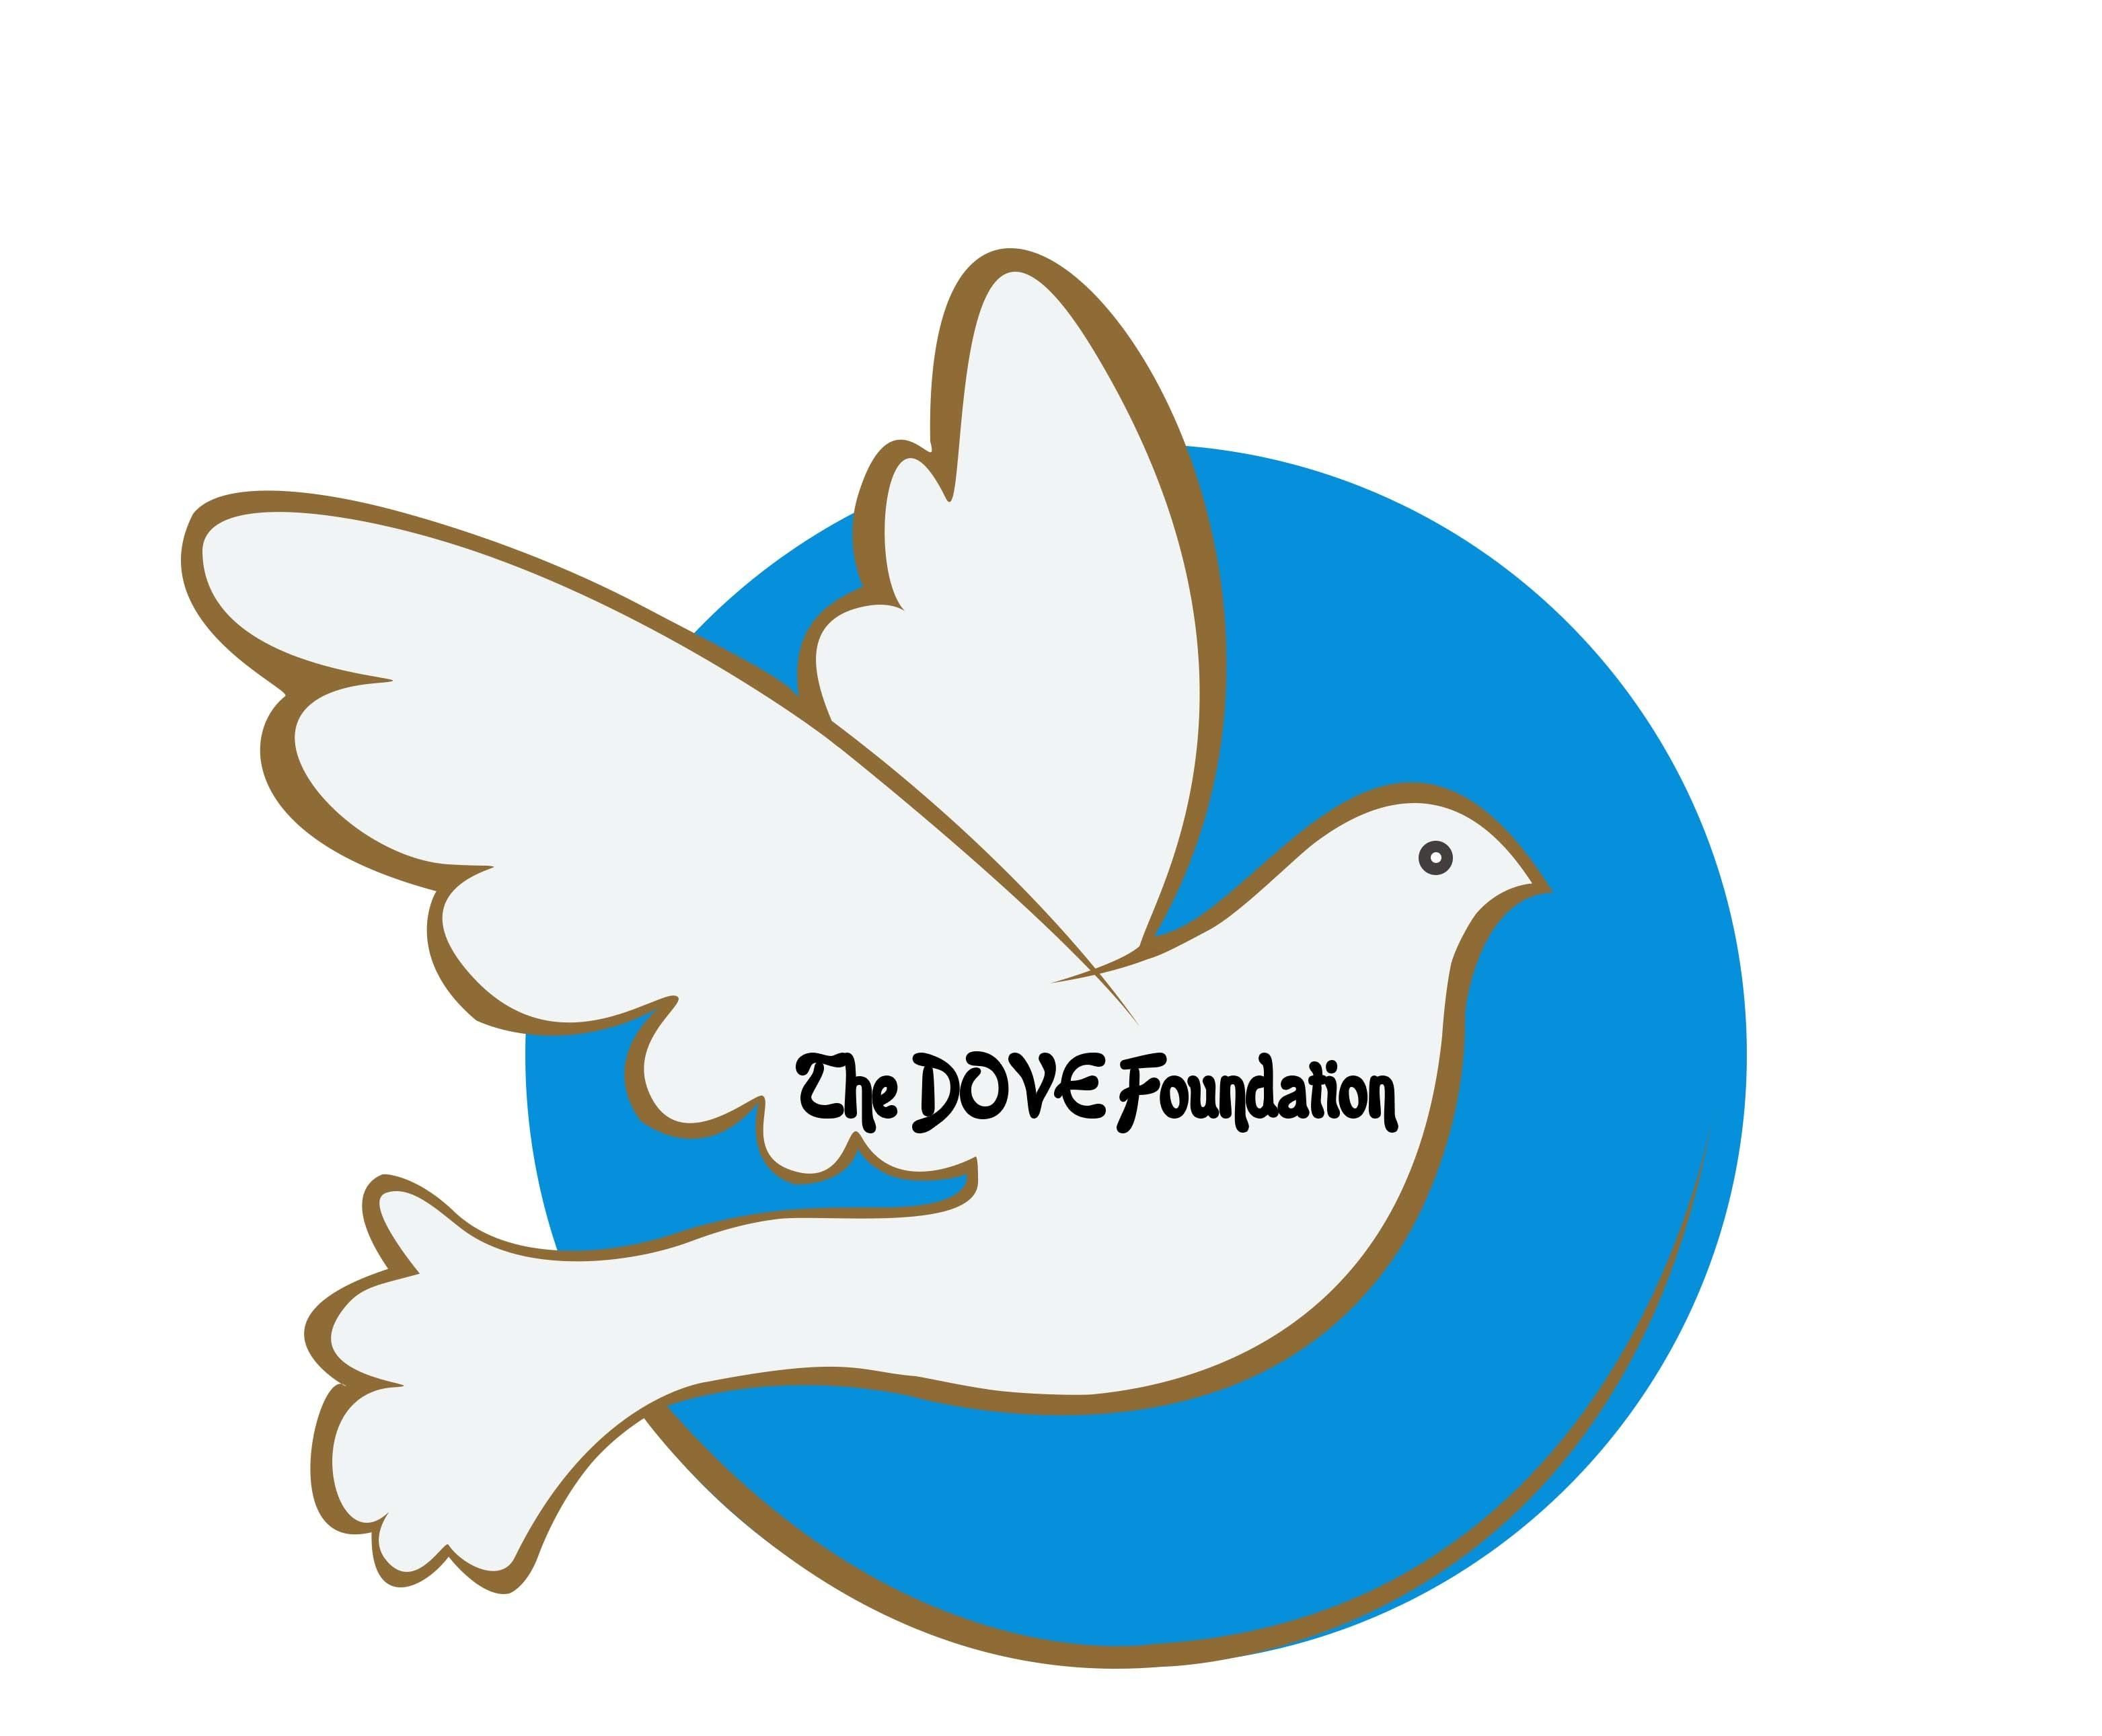 New high definition logo I created for the Dove Foundation